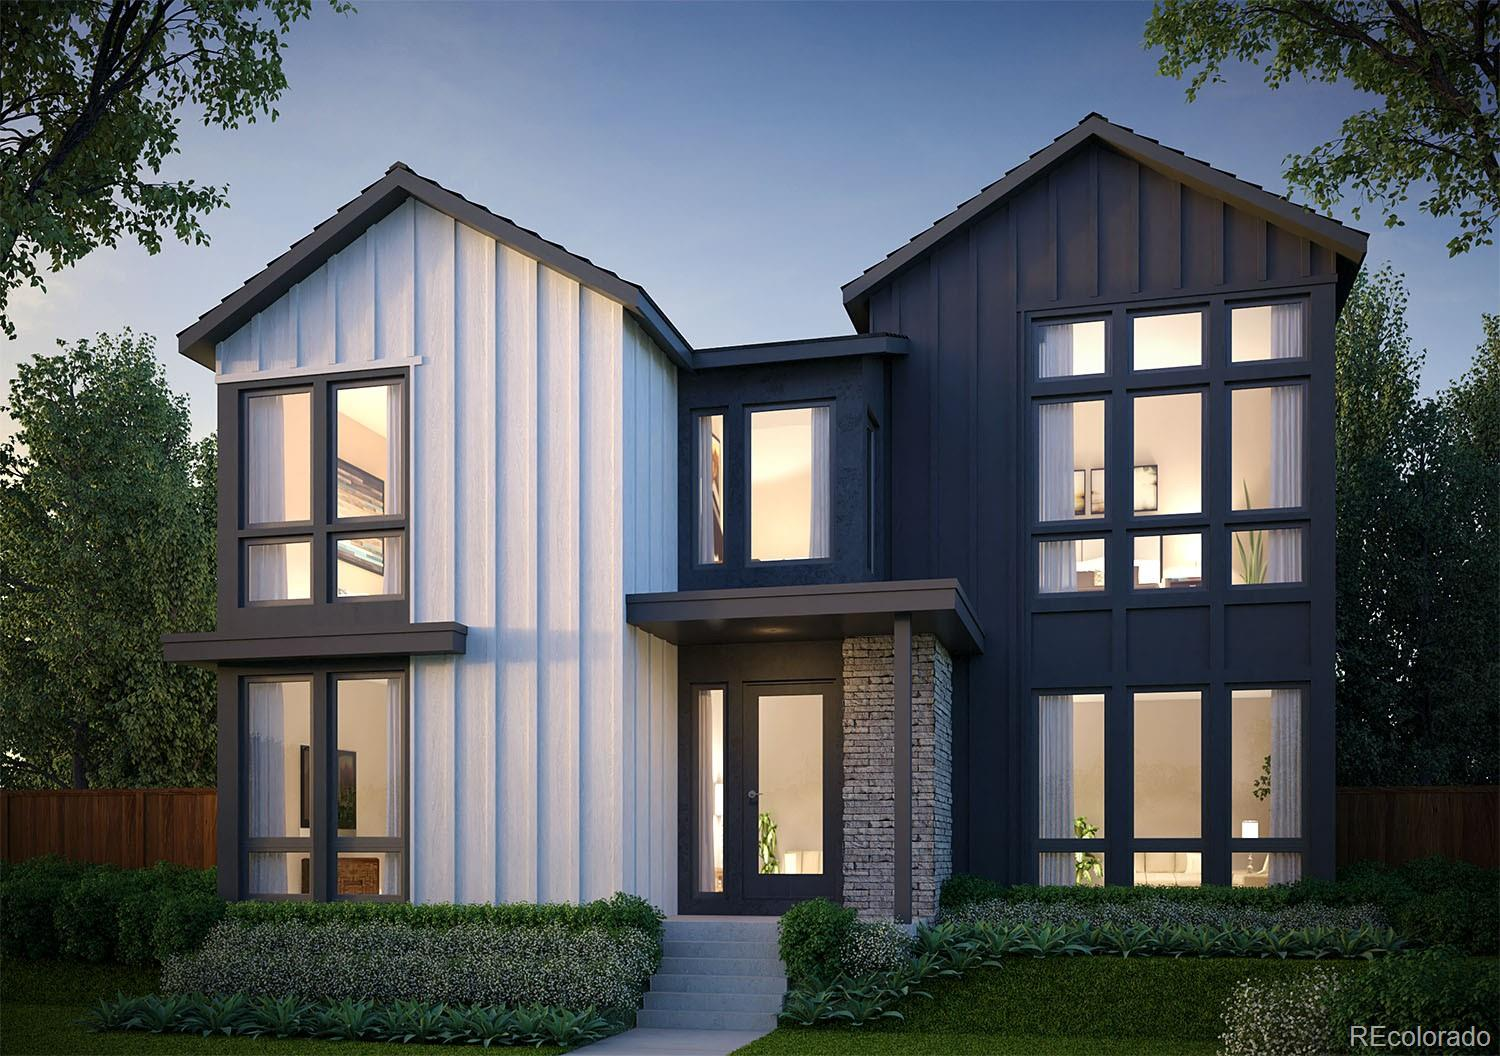 Ready in August!  The stunning Vive 1 by Infinity Home Collection.  Modern, open concept plan with 4 bedrooms, 3.5 baths, office, loft, and covered patio with privacy wall.  Family room fireplace, 16ft stacking glass corner door at dining room, nearly 8 X 8 kitchen island, and generous kitchen pantry.  Upstairs you'll find a true master suite with two walk-in closets, an enormous luxury shower with multiple shower heads, and 6ft soaking tub.  Luxury finishes throughout, on a west facing alley-corner lot near future parks and school.  Under construction, ready in August.